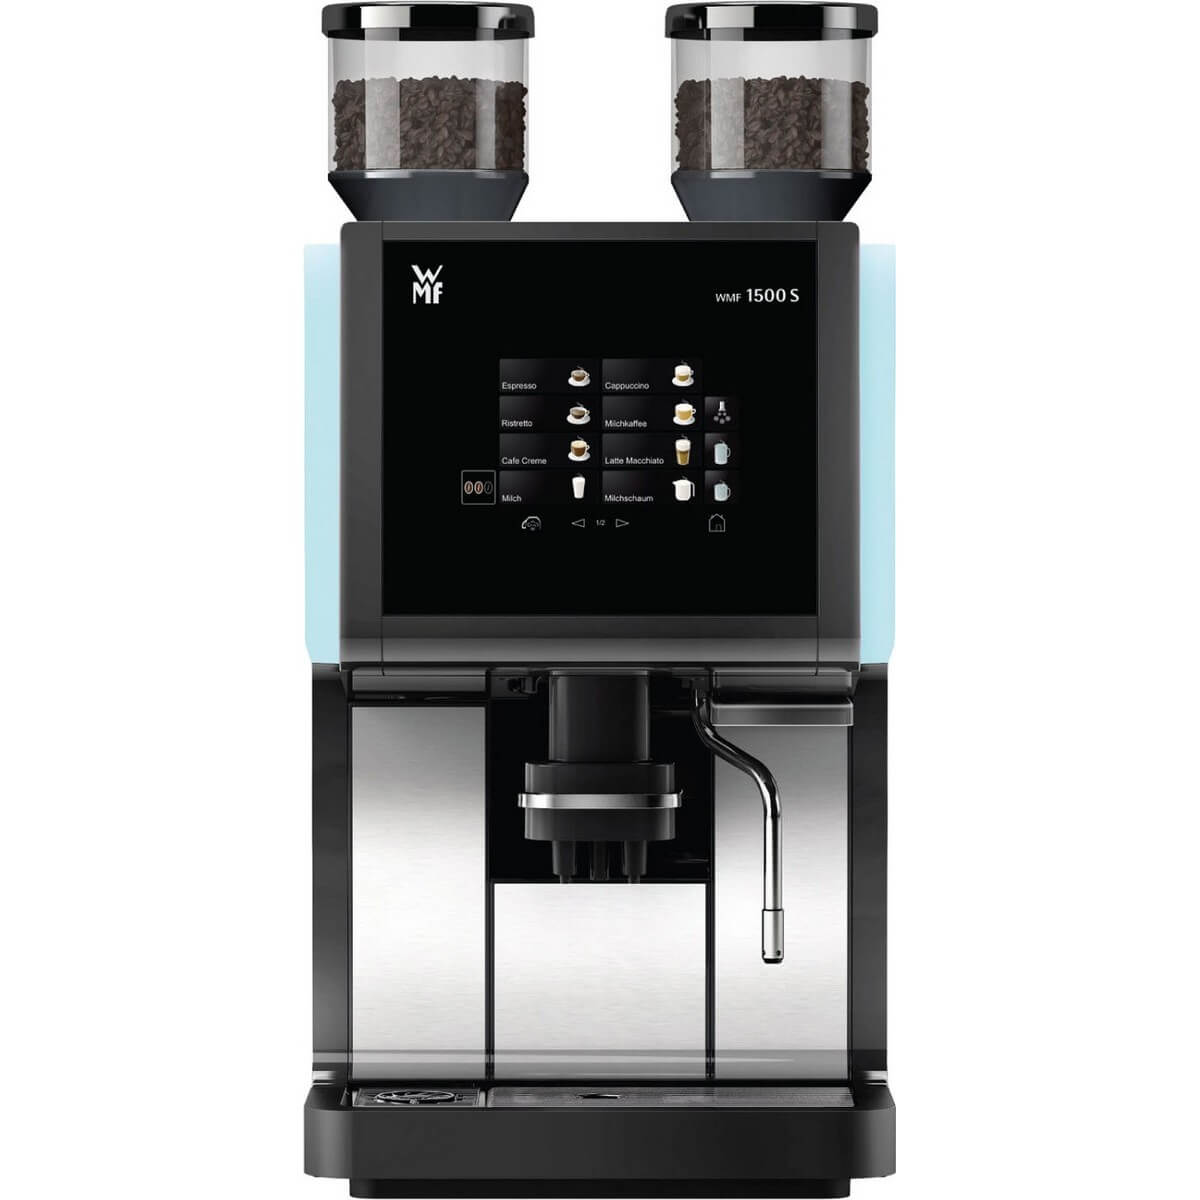 coffee machine wmf presto classic 1400s single choc single coffee. Black Bedroom Furniture Sets. Home Design Ideas